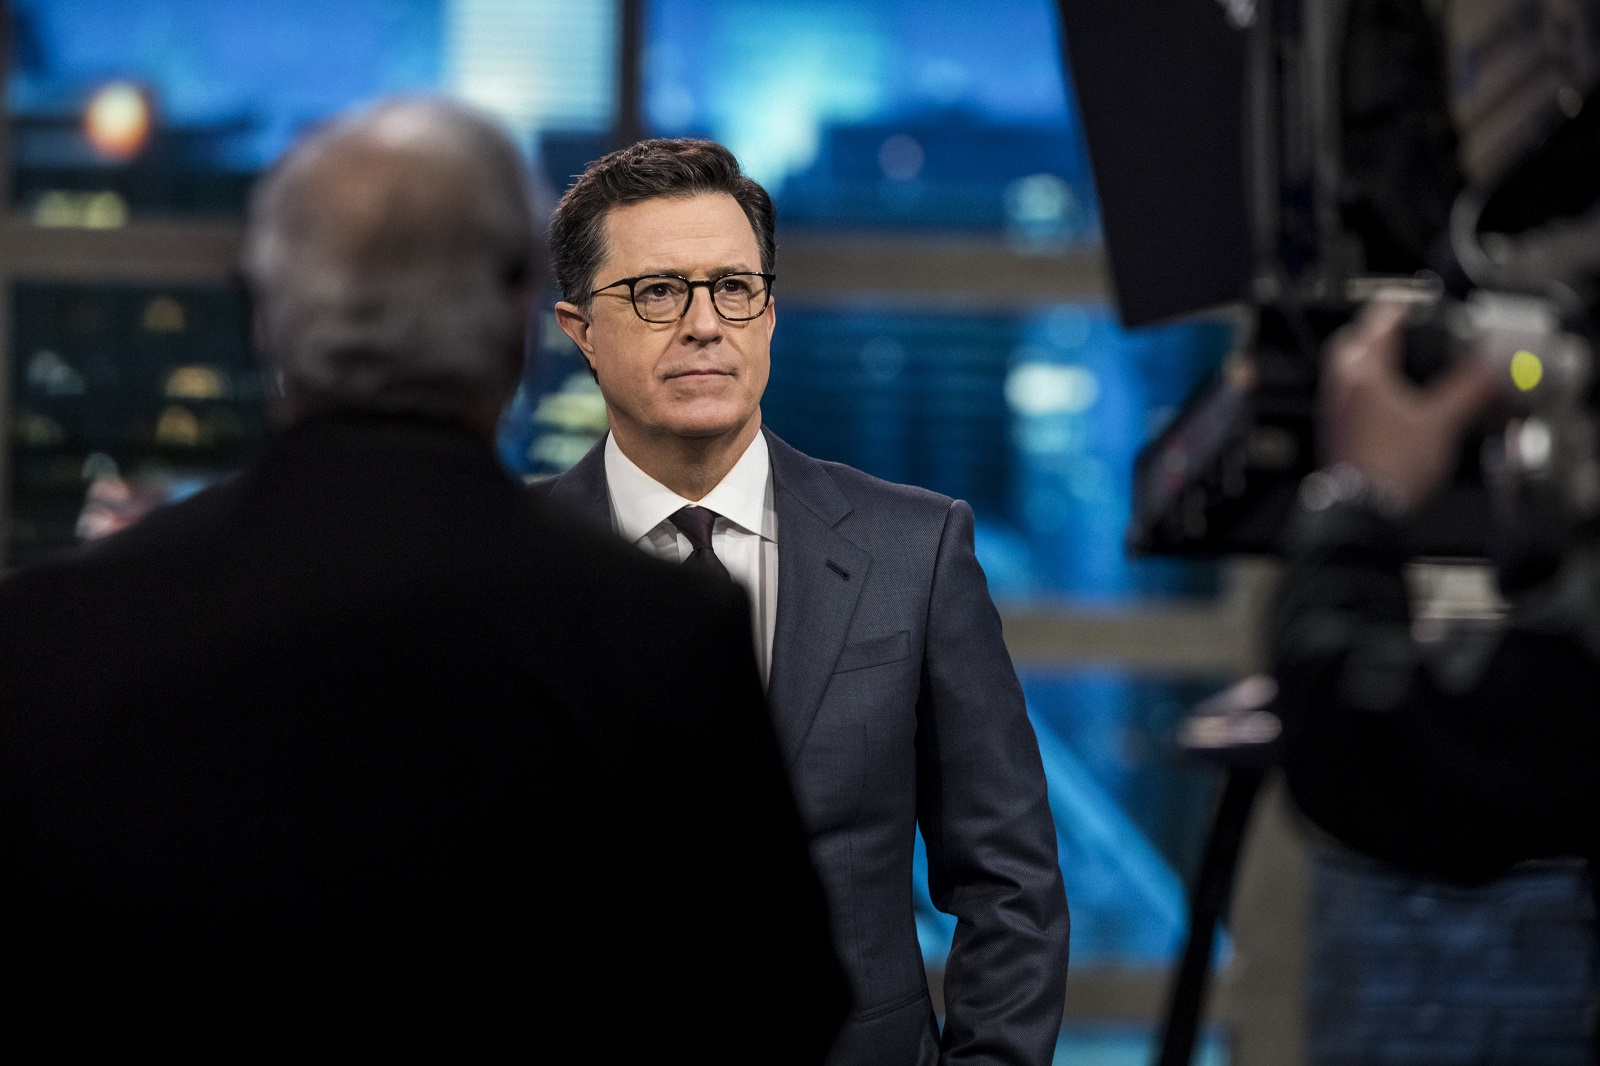 """Stephen Colbert during a taping of """"The Late Show"""" at the Ed Sullivan Theater in New York. (Chad Batka/The New York Times)"""